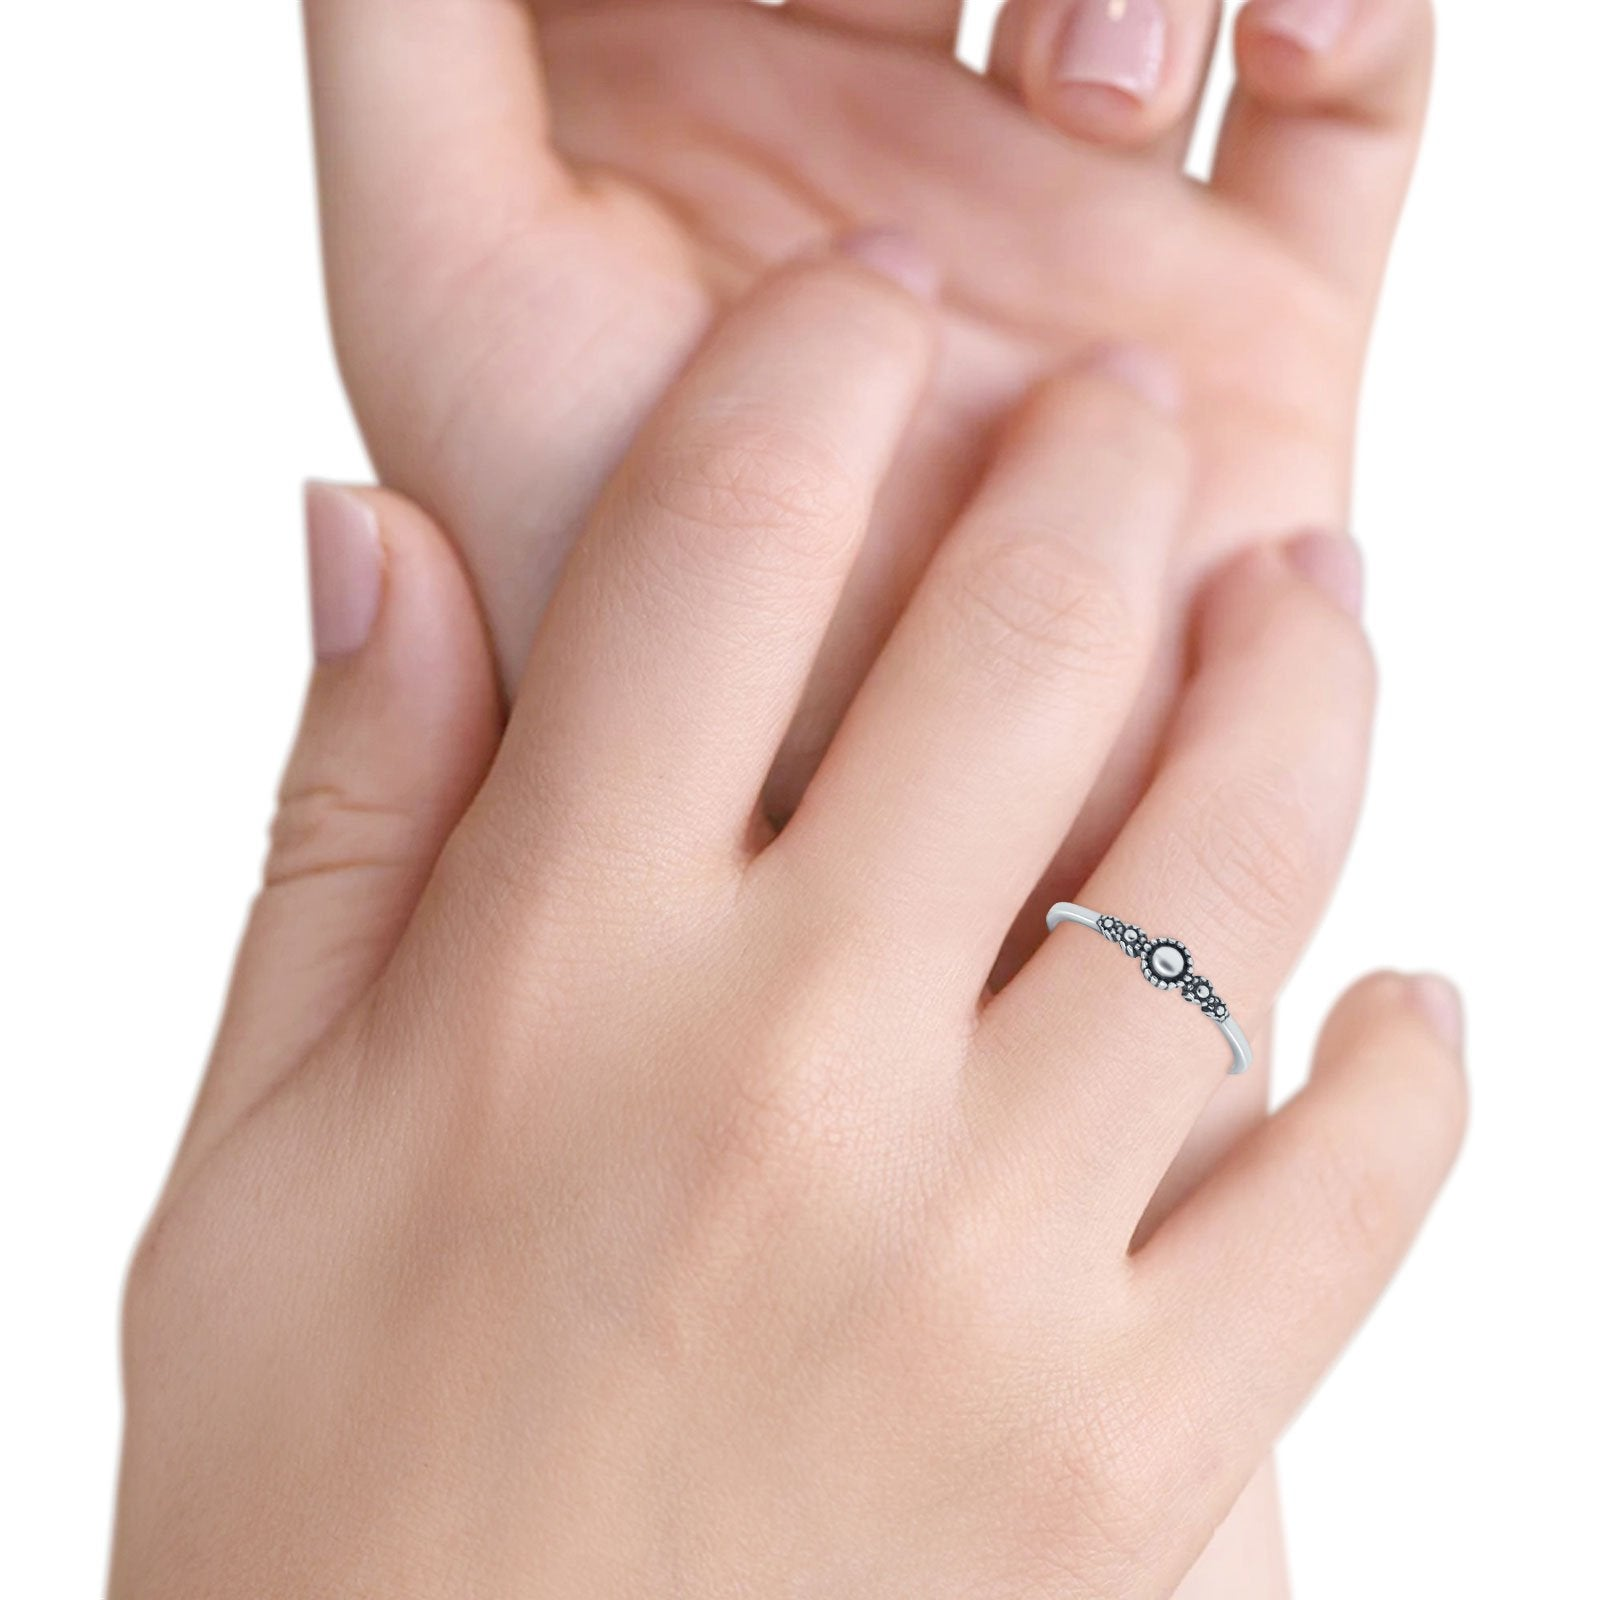 Petite Dainty Band Plain Ring Oxidized 925 Sterling Silver